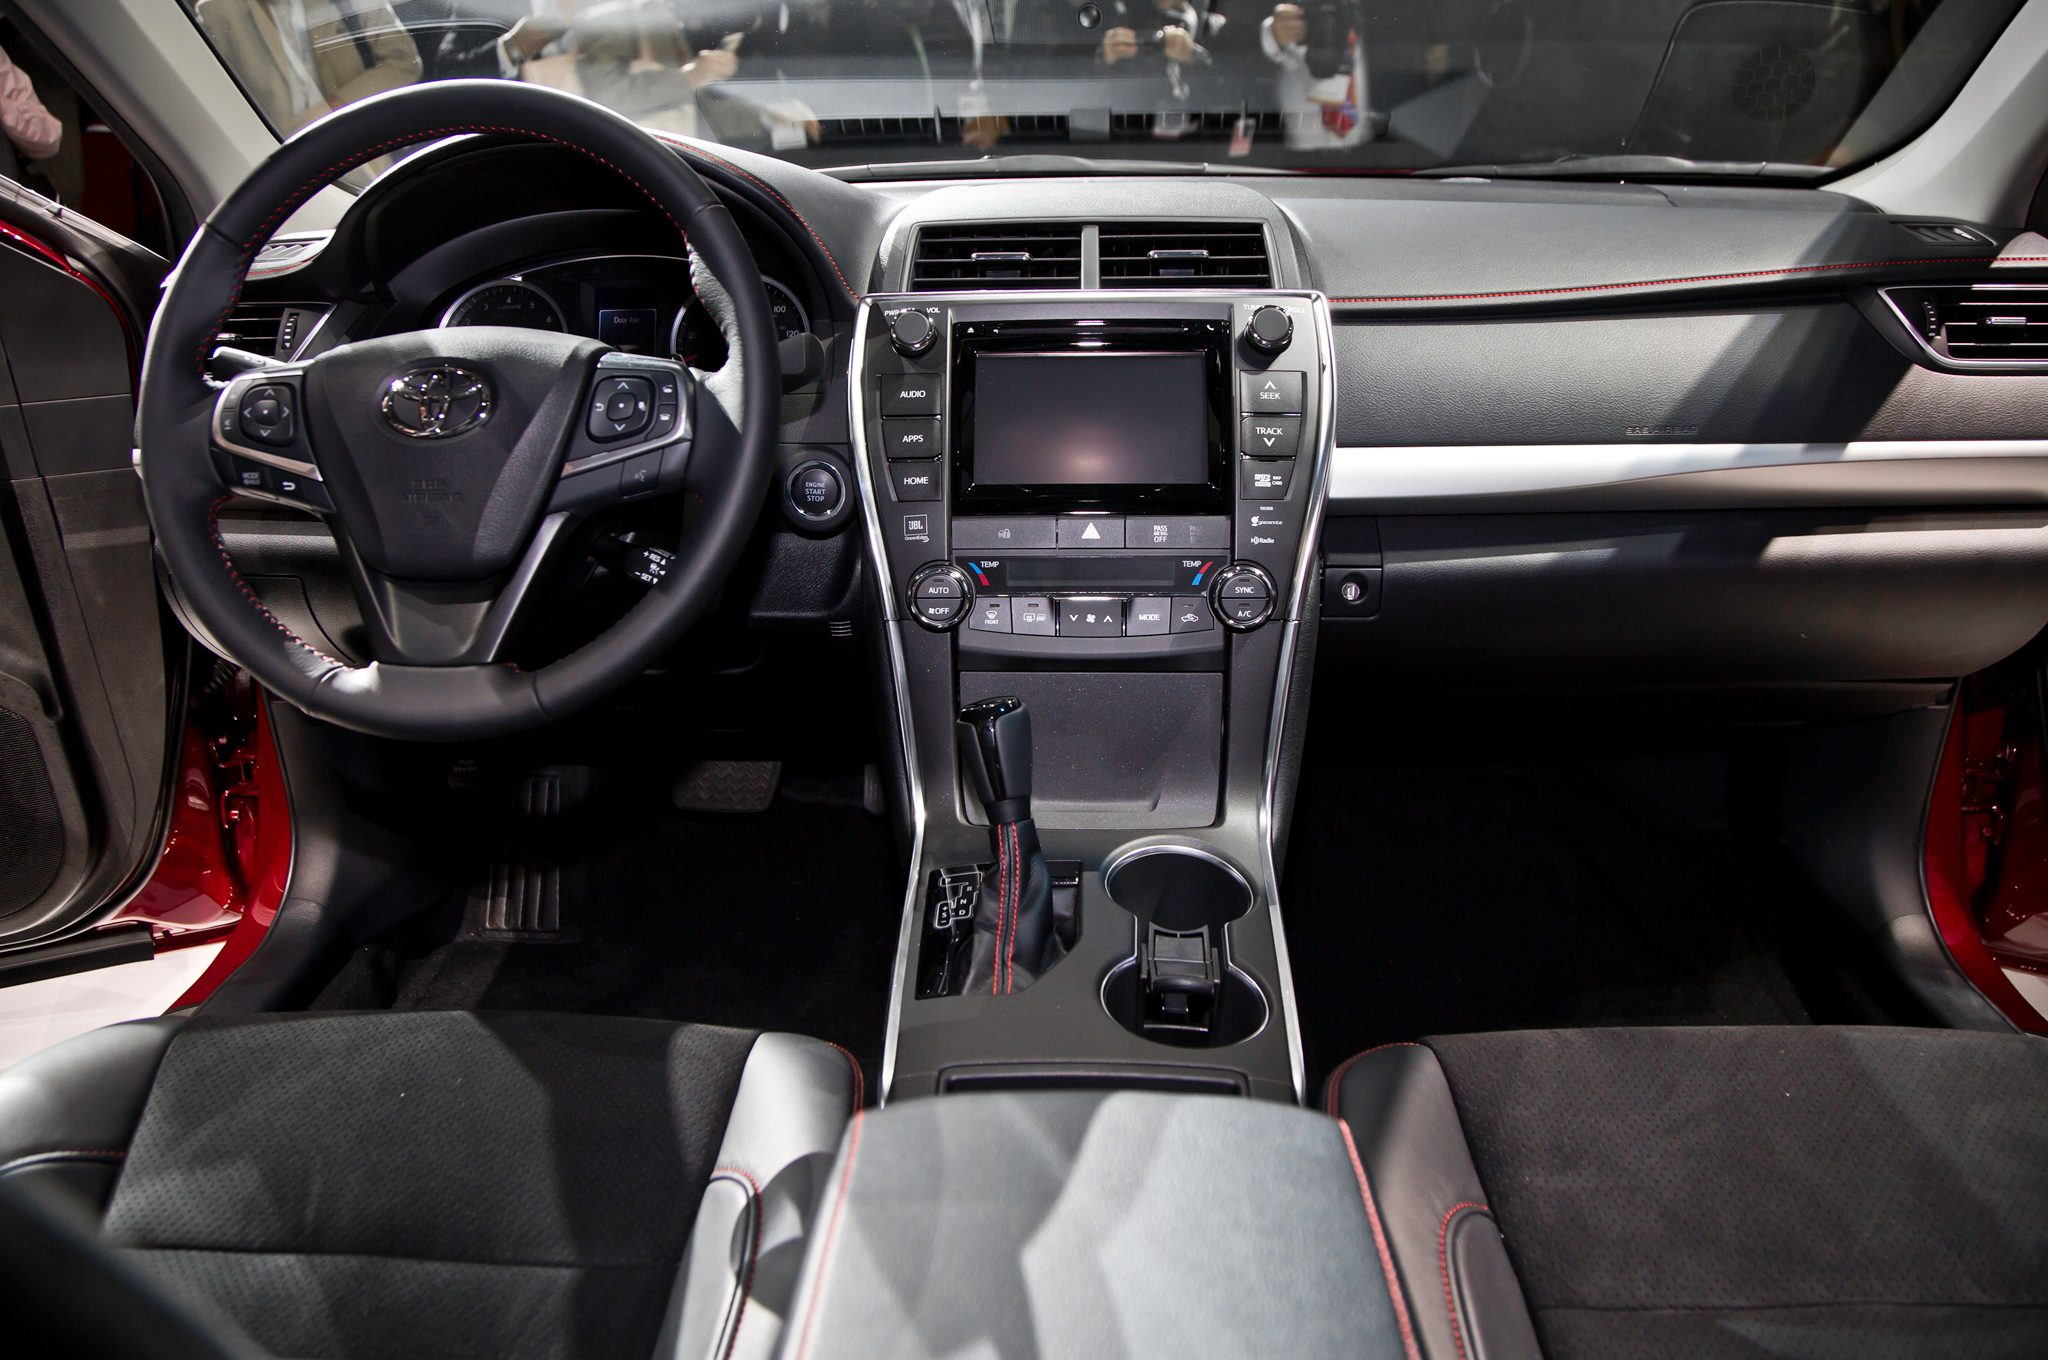 interior all new camry 2016 grand avanza 1.5 g m/t limited prestige toyota reviews the 2015